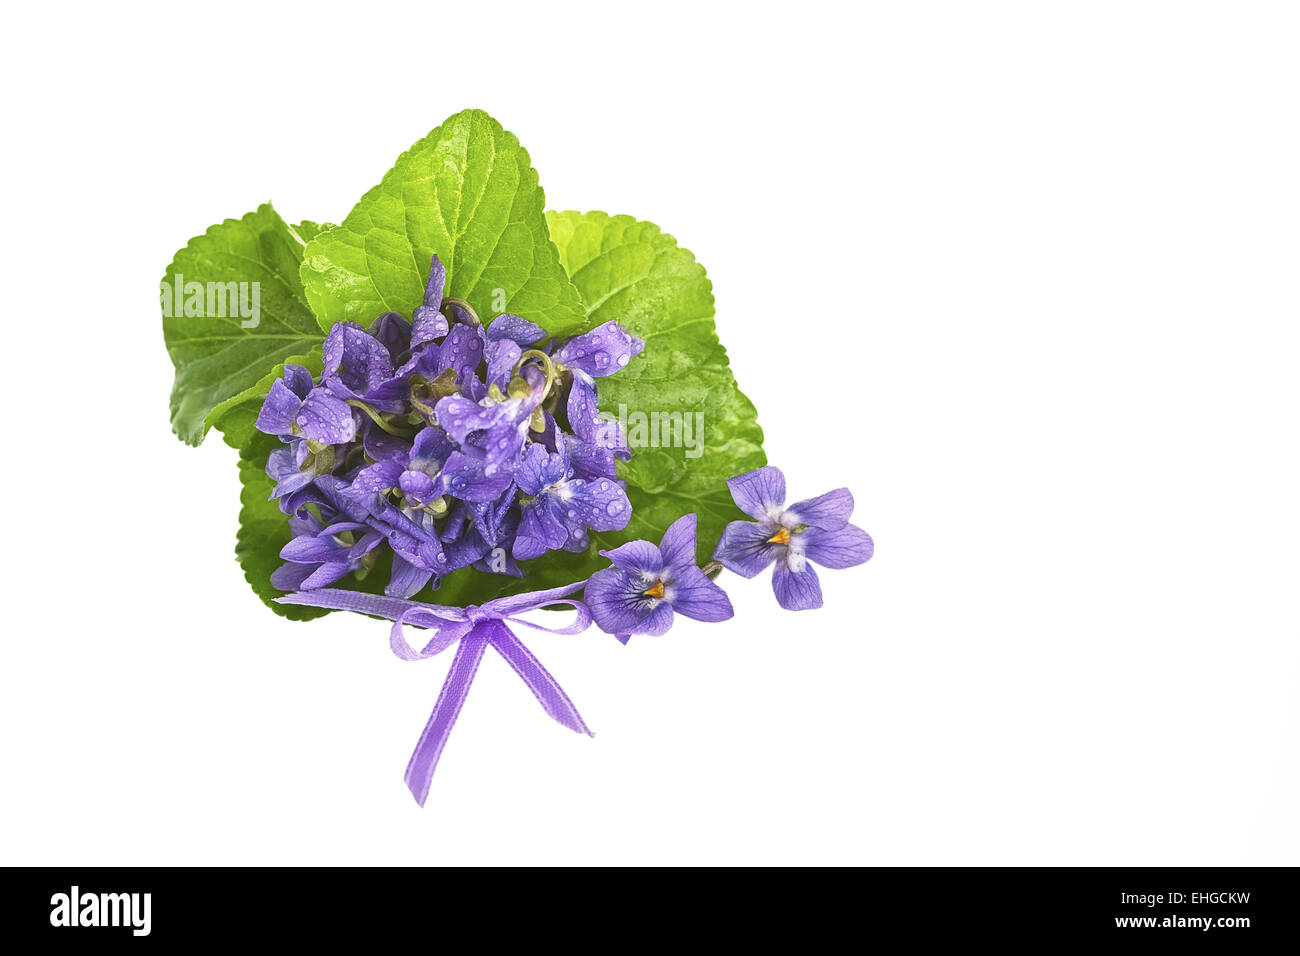 Violet bunch - Stock Image